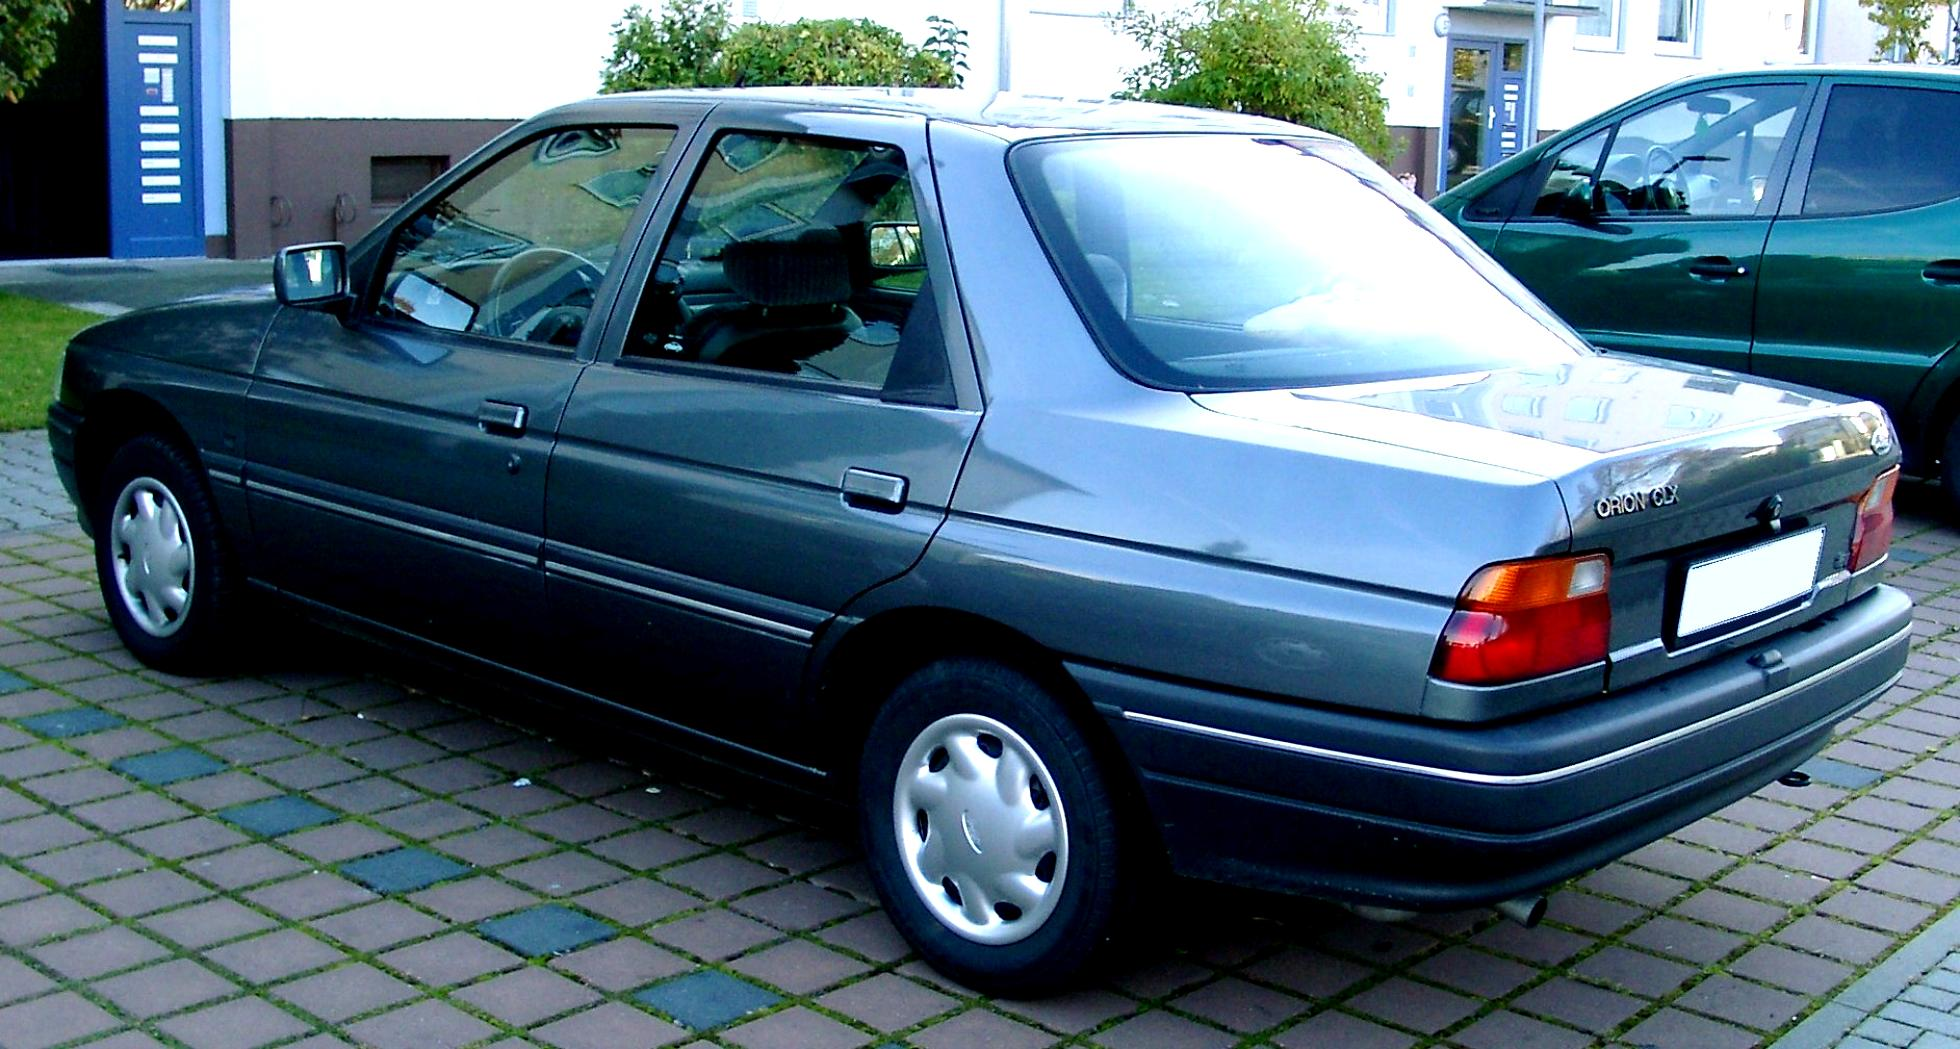 Ford Orion 1990 #55